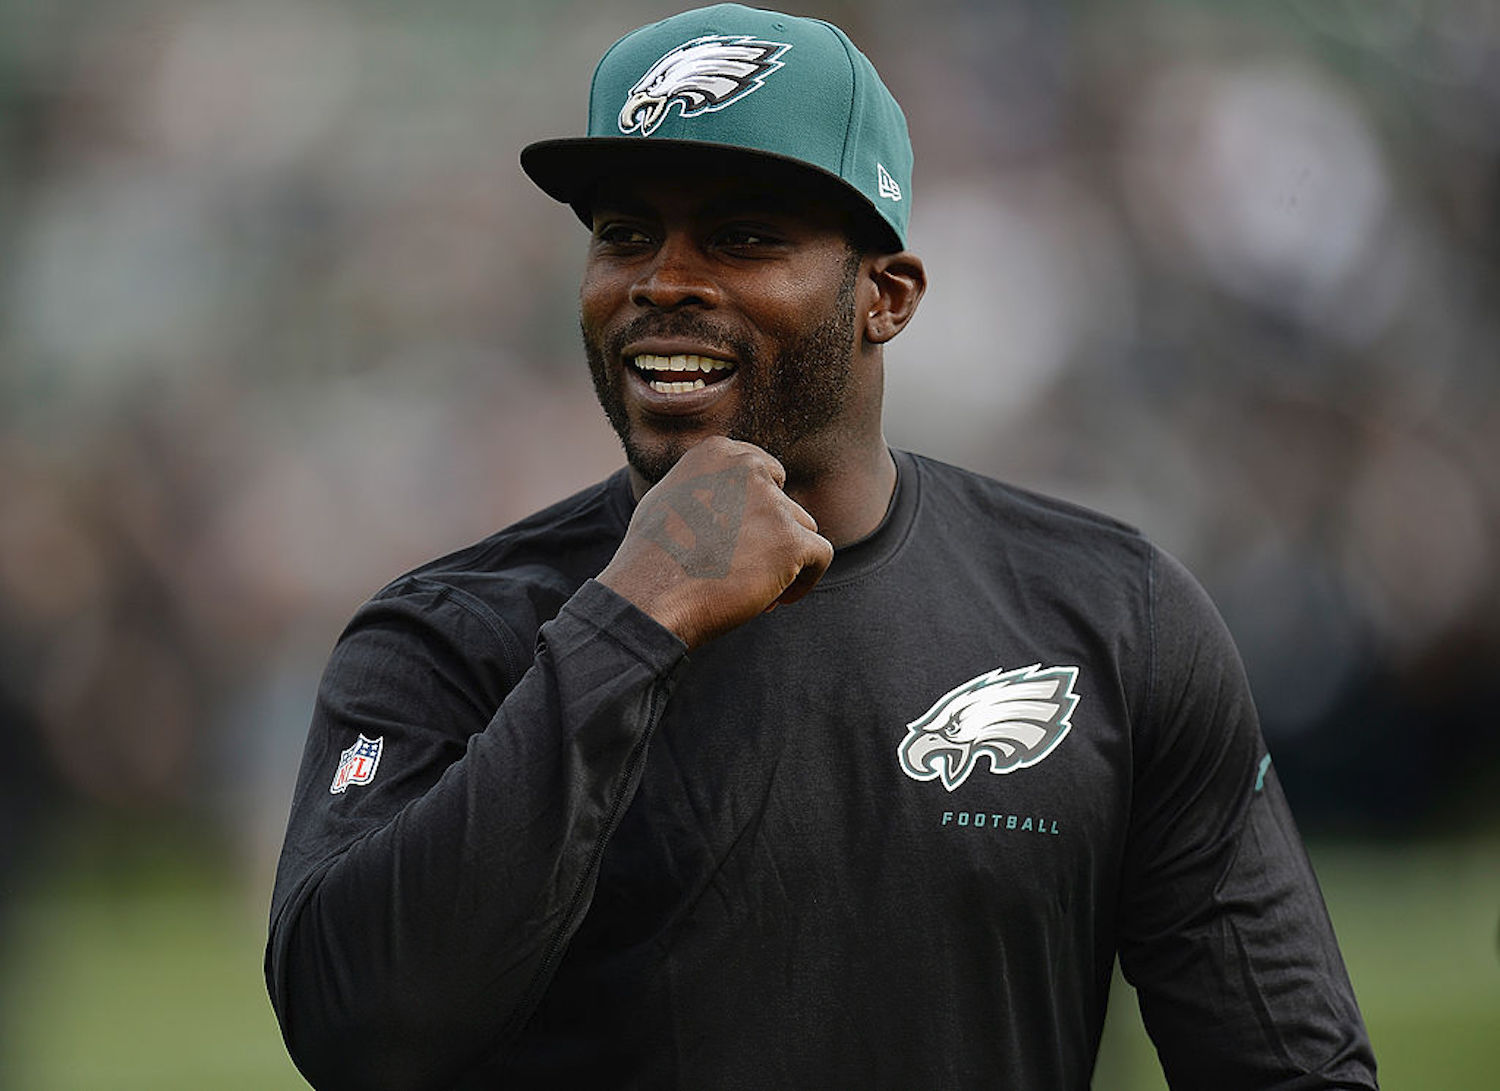 Carson Wentz and the Philadelphia Eagles have struggled out of the gates in 2020, but Michael Vick thinks Wentz is earning his contract.